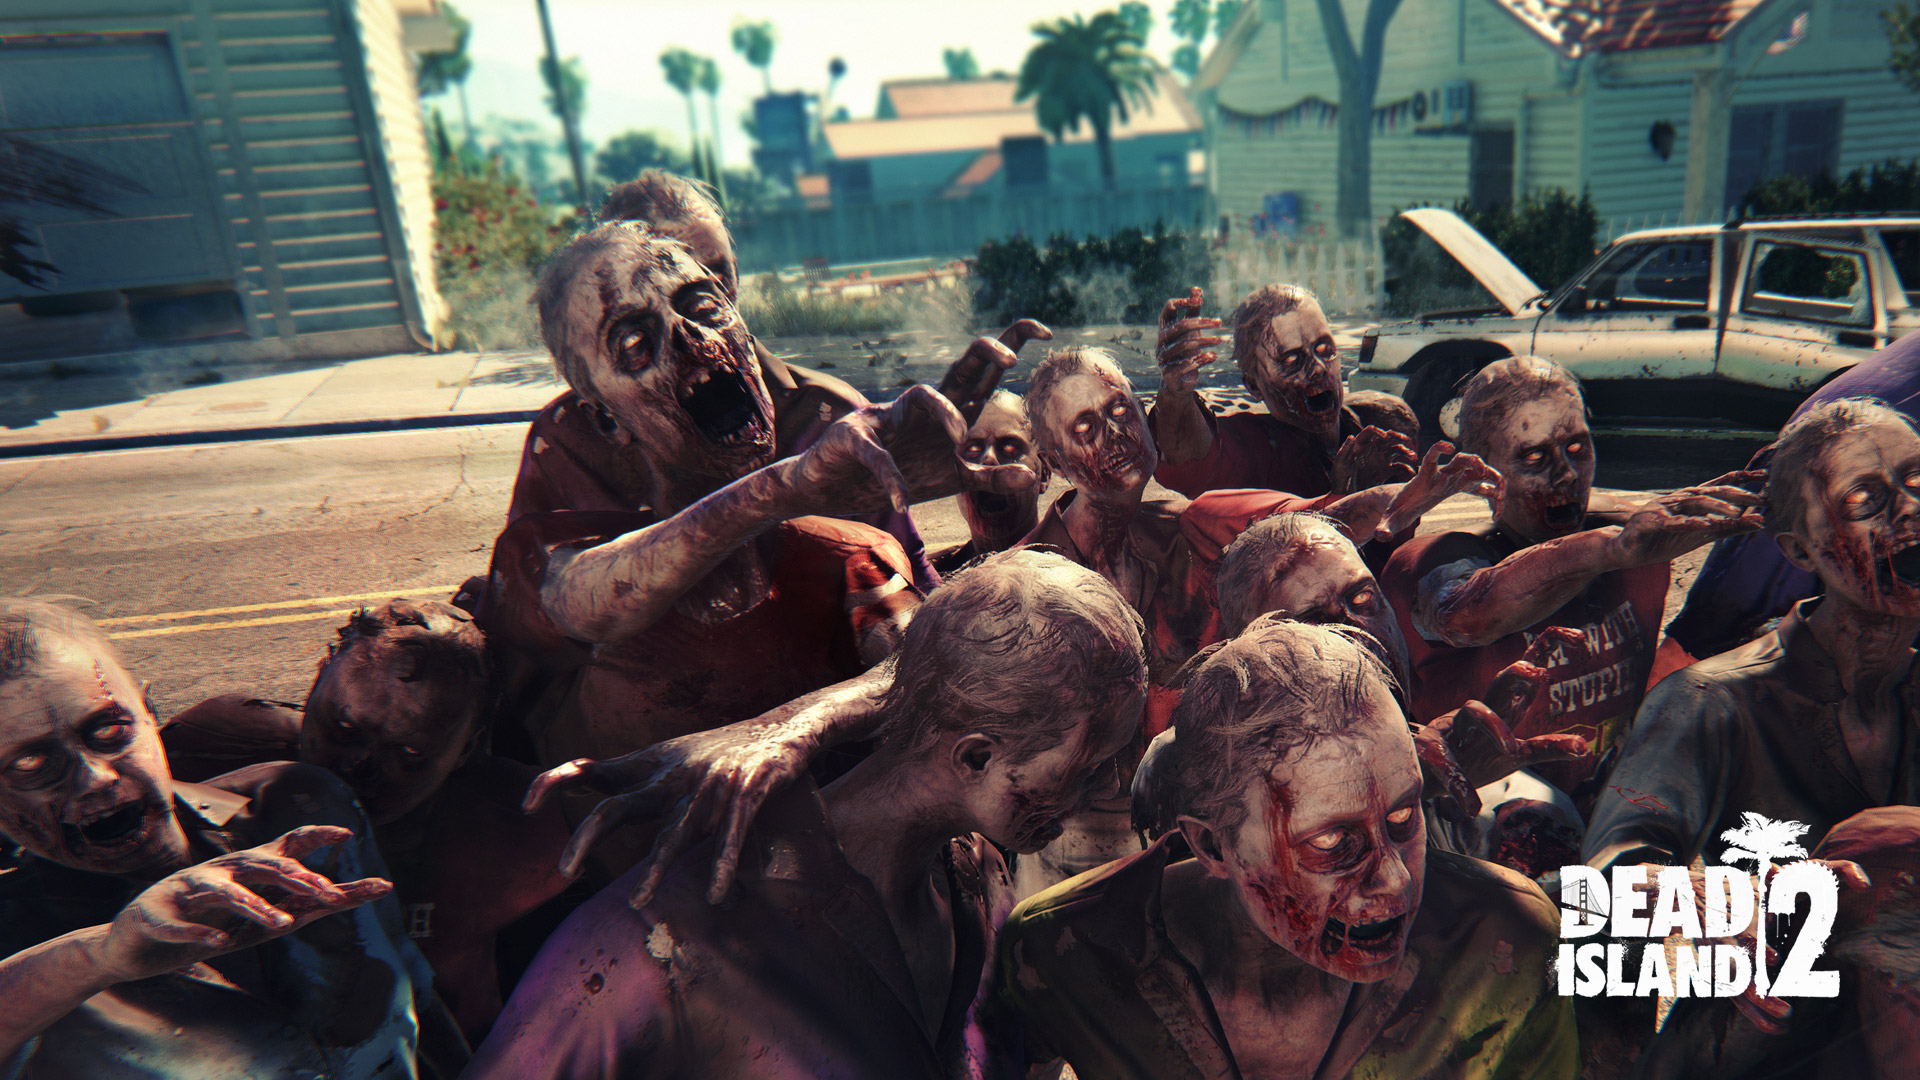 Dead Island 2 Wallpaper in 1920x1080